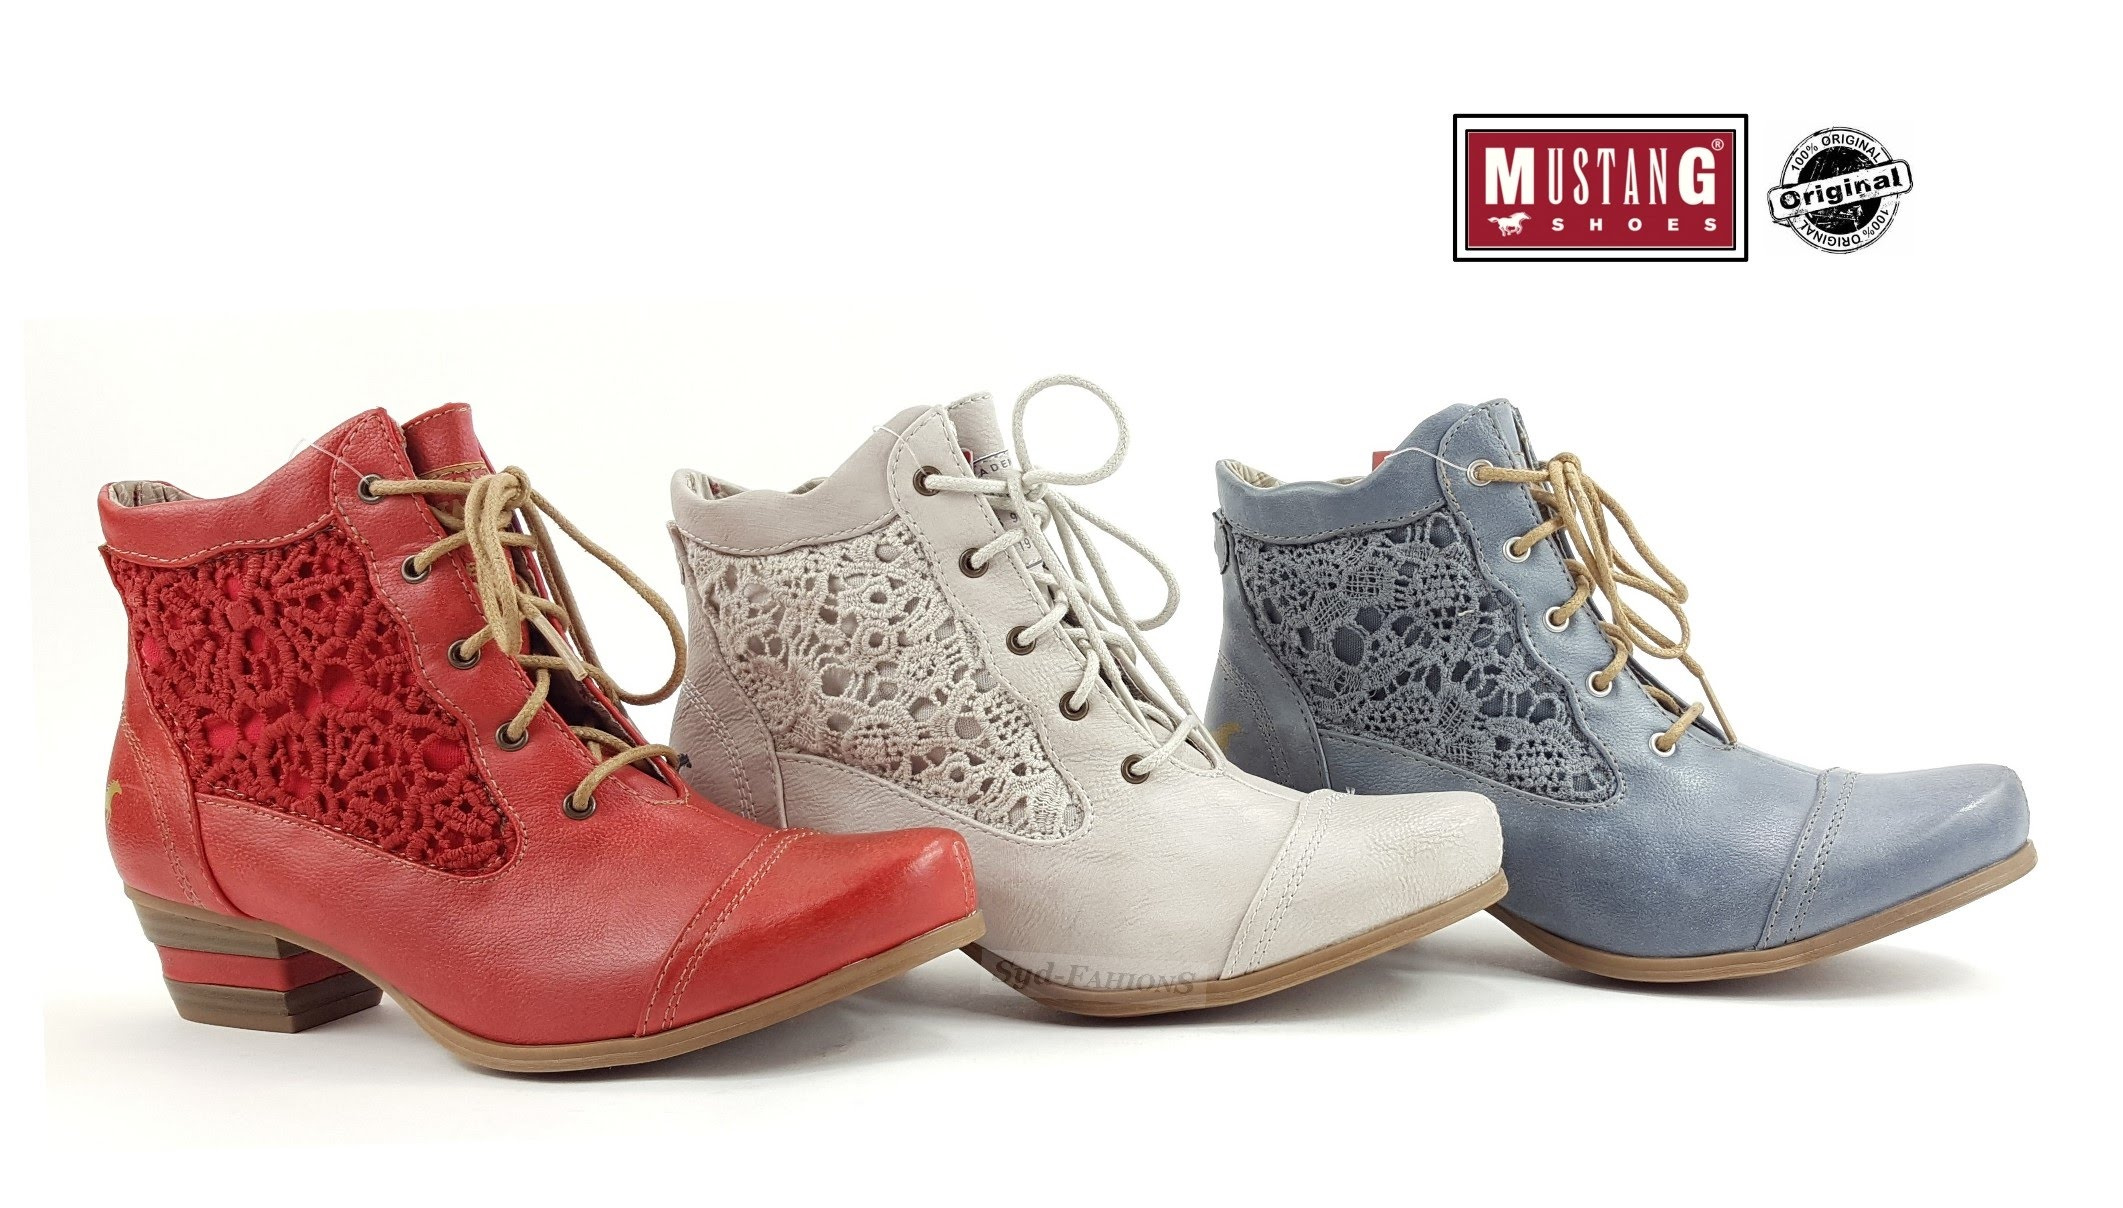 ae06c909ebdbca New Mustang Women s Boots Shoes Summer Lace-up Boots Ankle Boots ...